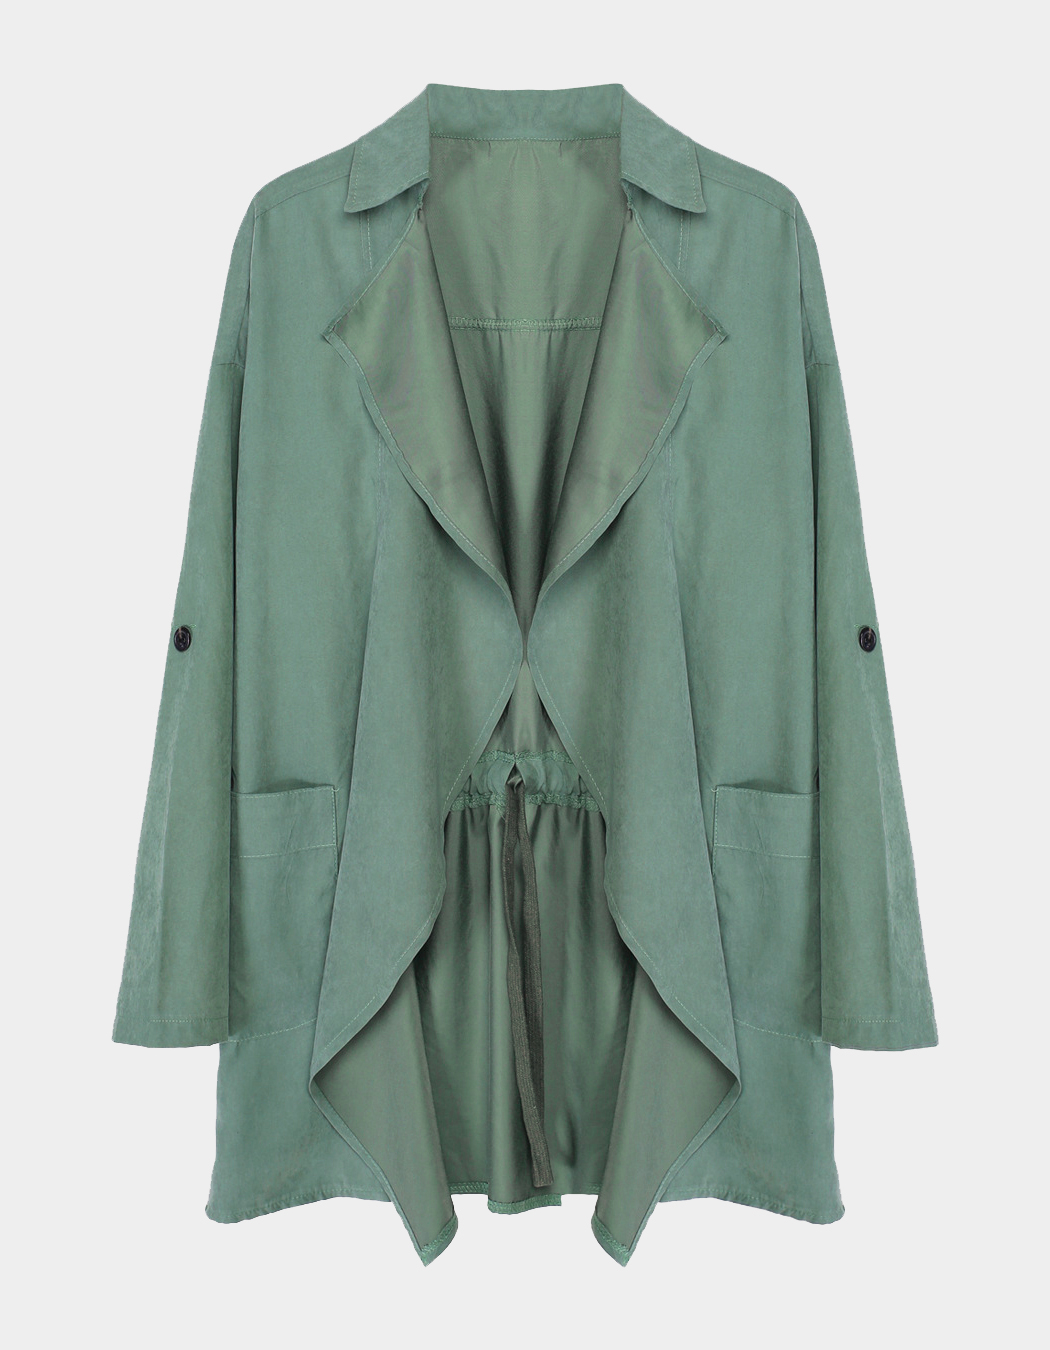 Green Casual Trench Outwear With Lapel Collar